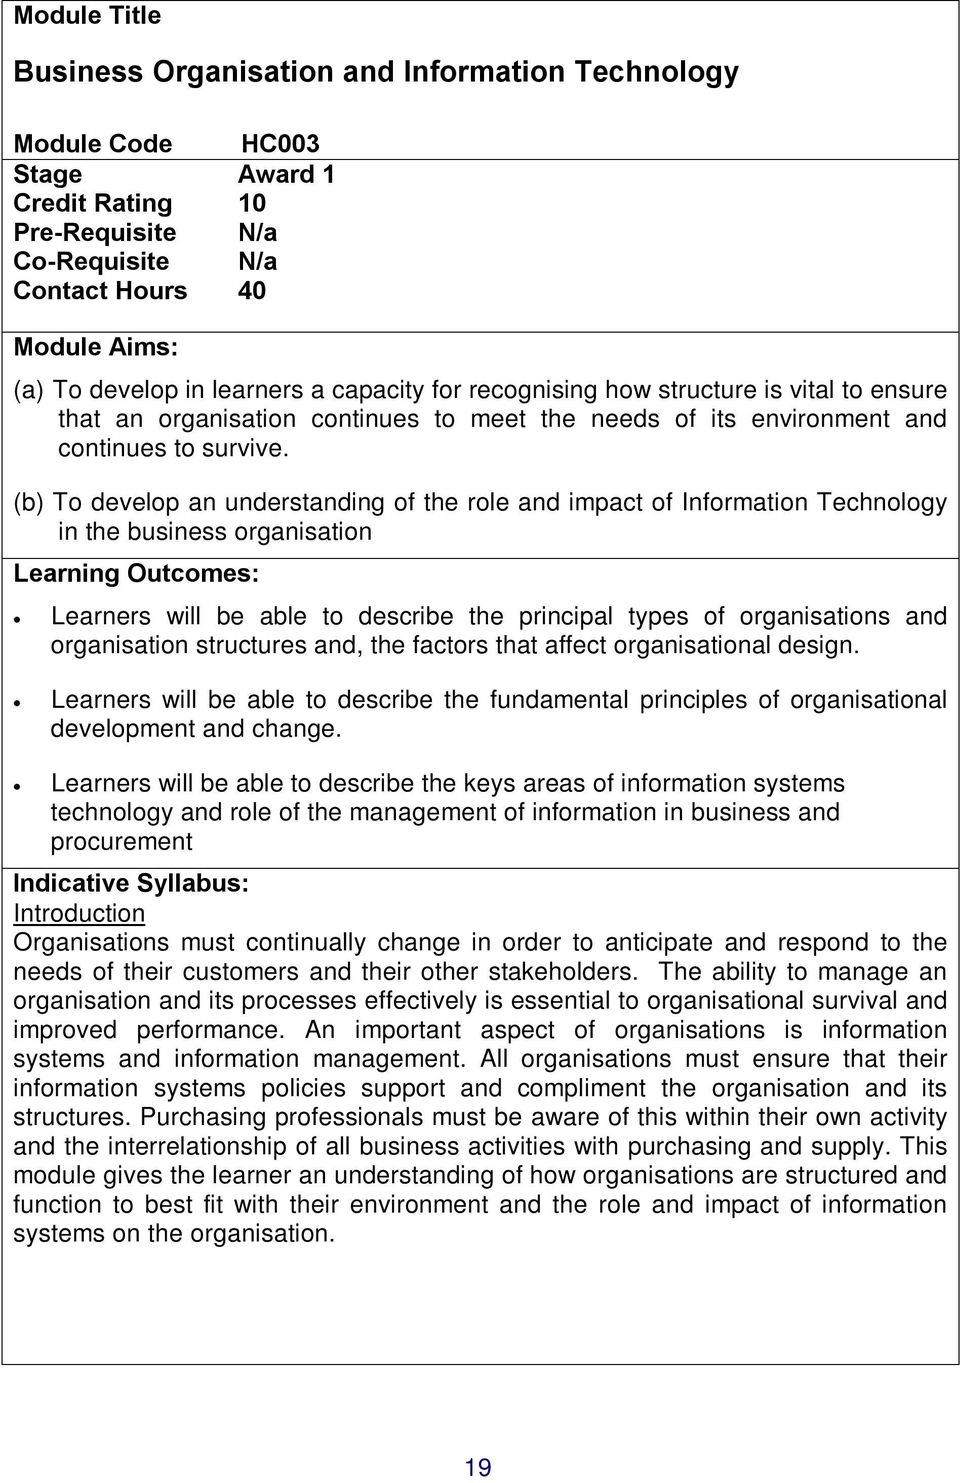 (b) To develop an understanding of the role and impact of Information Technology in the business organisation Learning Outcomes: Learners will be able to describe the principal types of organisations